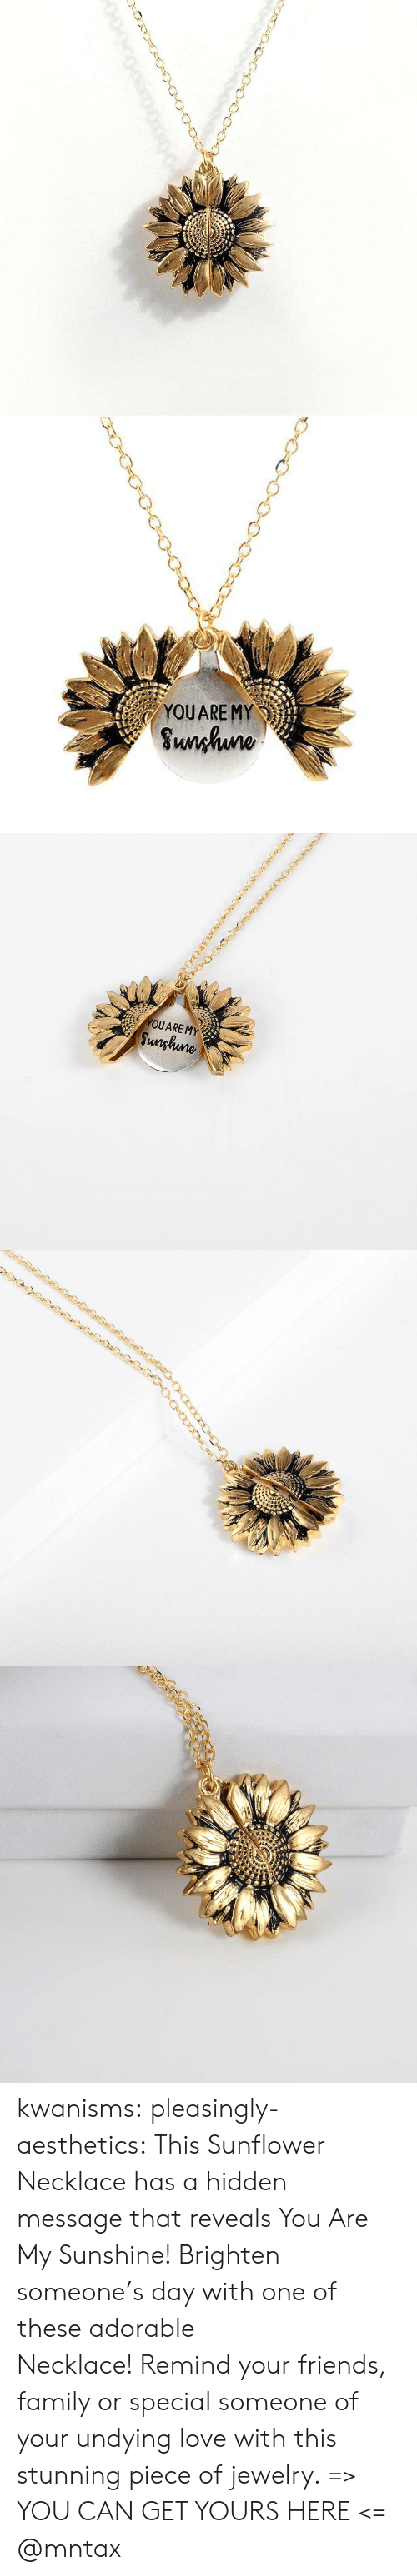 Family, Friends, and Love: YOUARE MY  Sunhuno   YOUARE MY  Sunghune kwanisms: pleasingly-aesthetics:  This Sunflower Necklace has a hidden message that reveals You Are My Sunshine! Brighten someone's day with one of these adorable Necklace! Remind your friends, family or special someone of your undying love with this stunning piece of jewelry. => YOU CAN GET YOURS HERE <=   @mntax